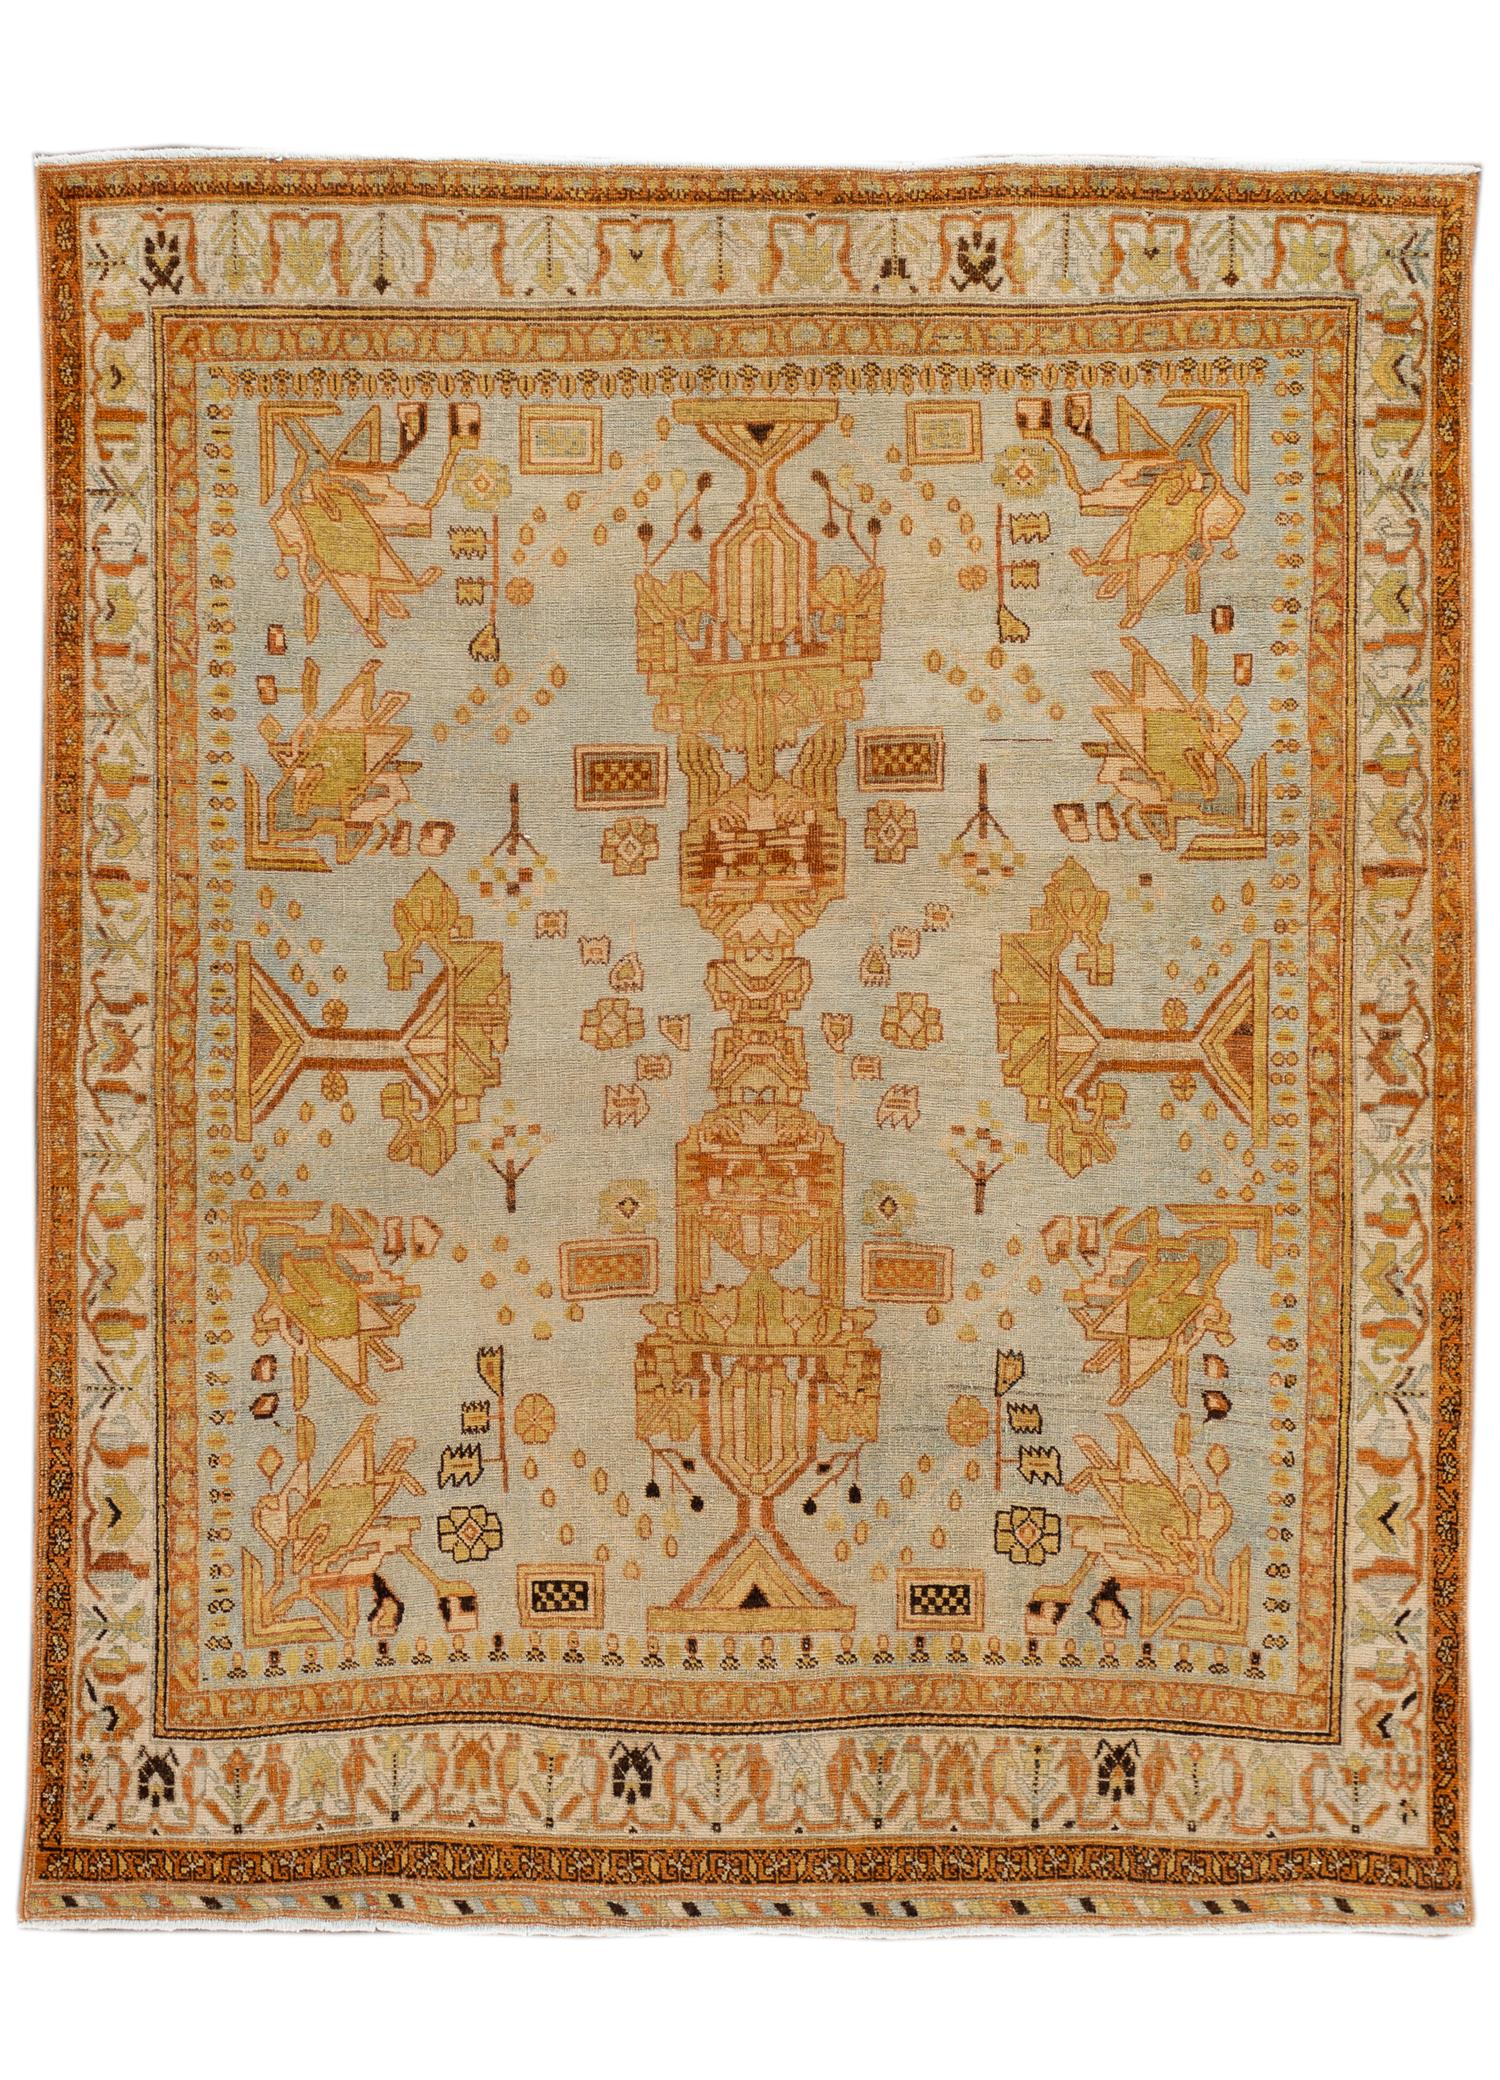 Antique Afshar Rug, #10235262, 5' x 6'